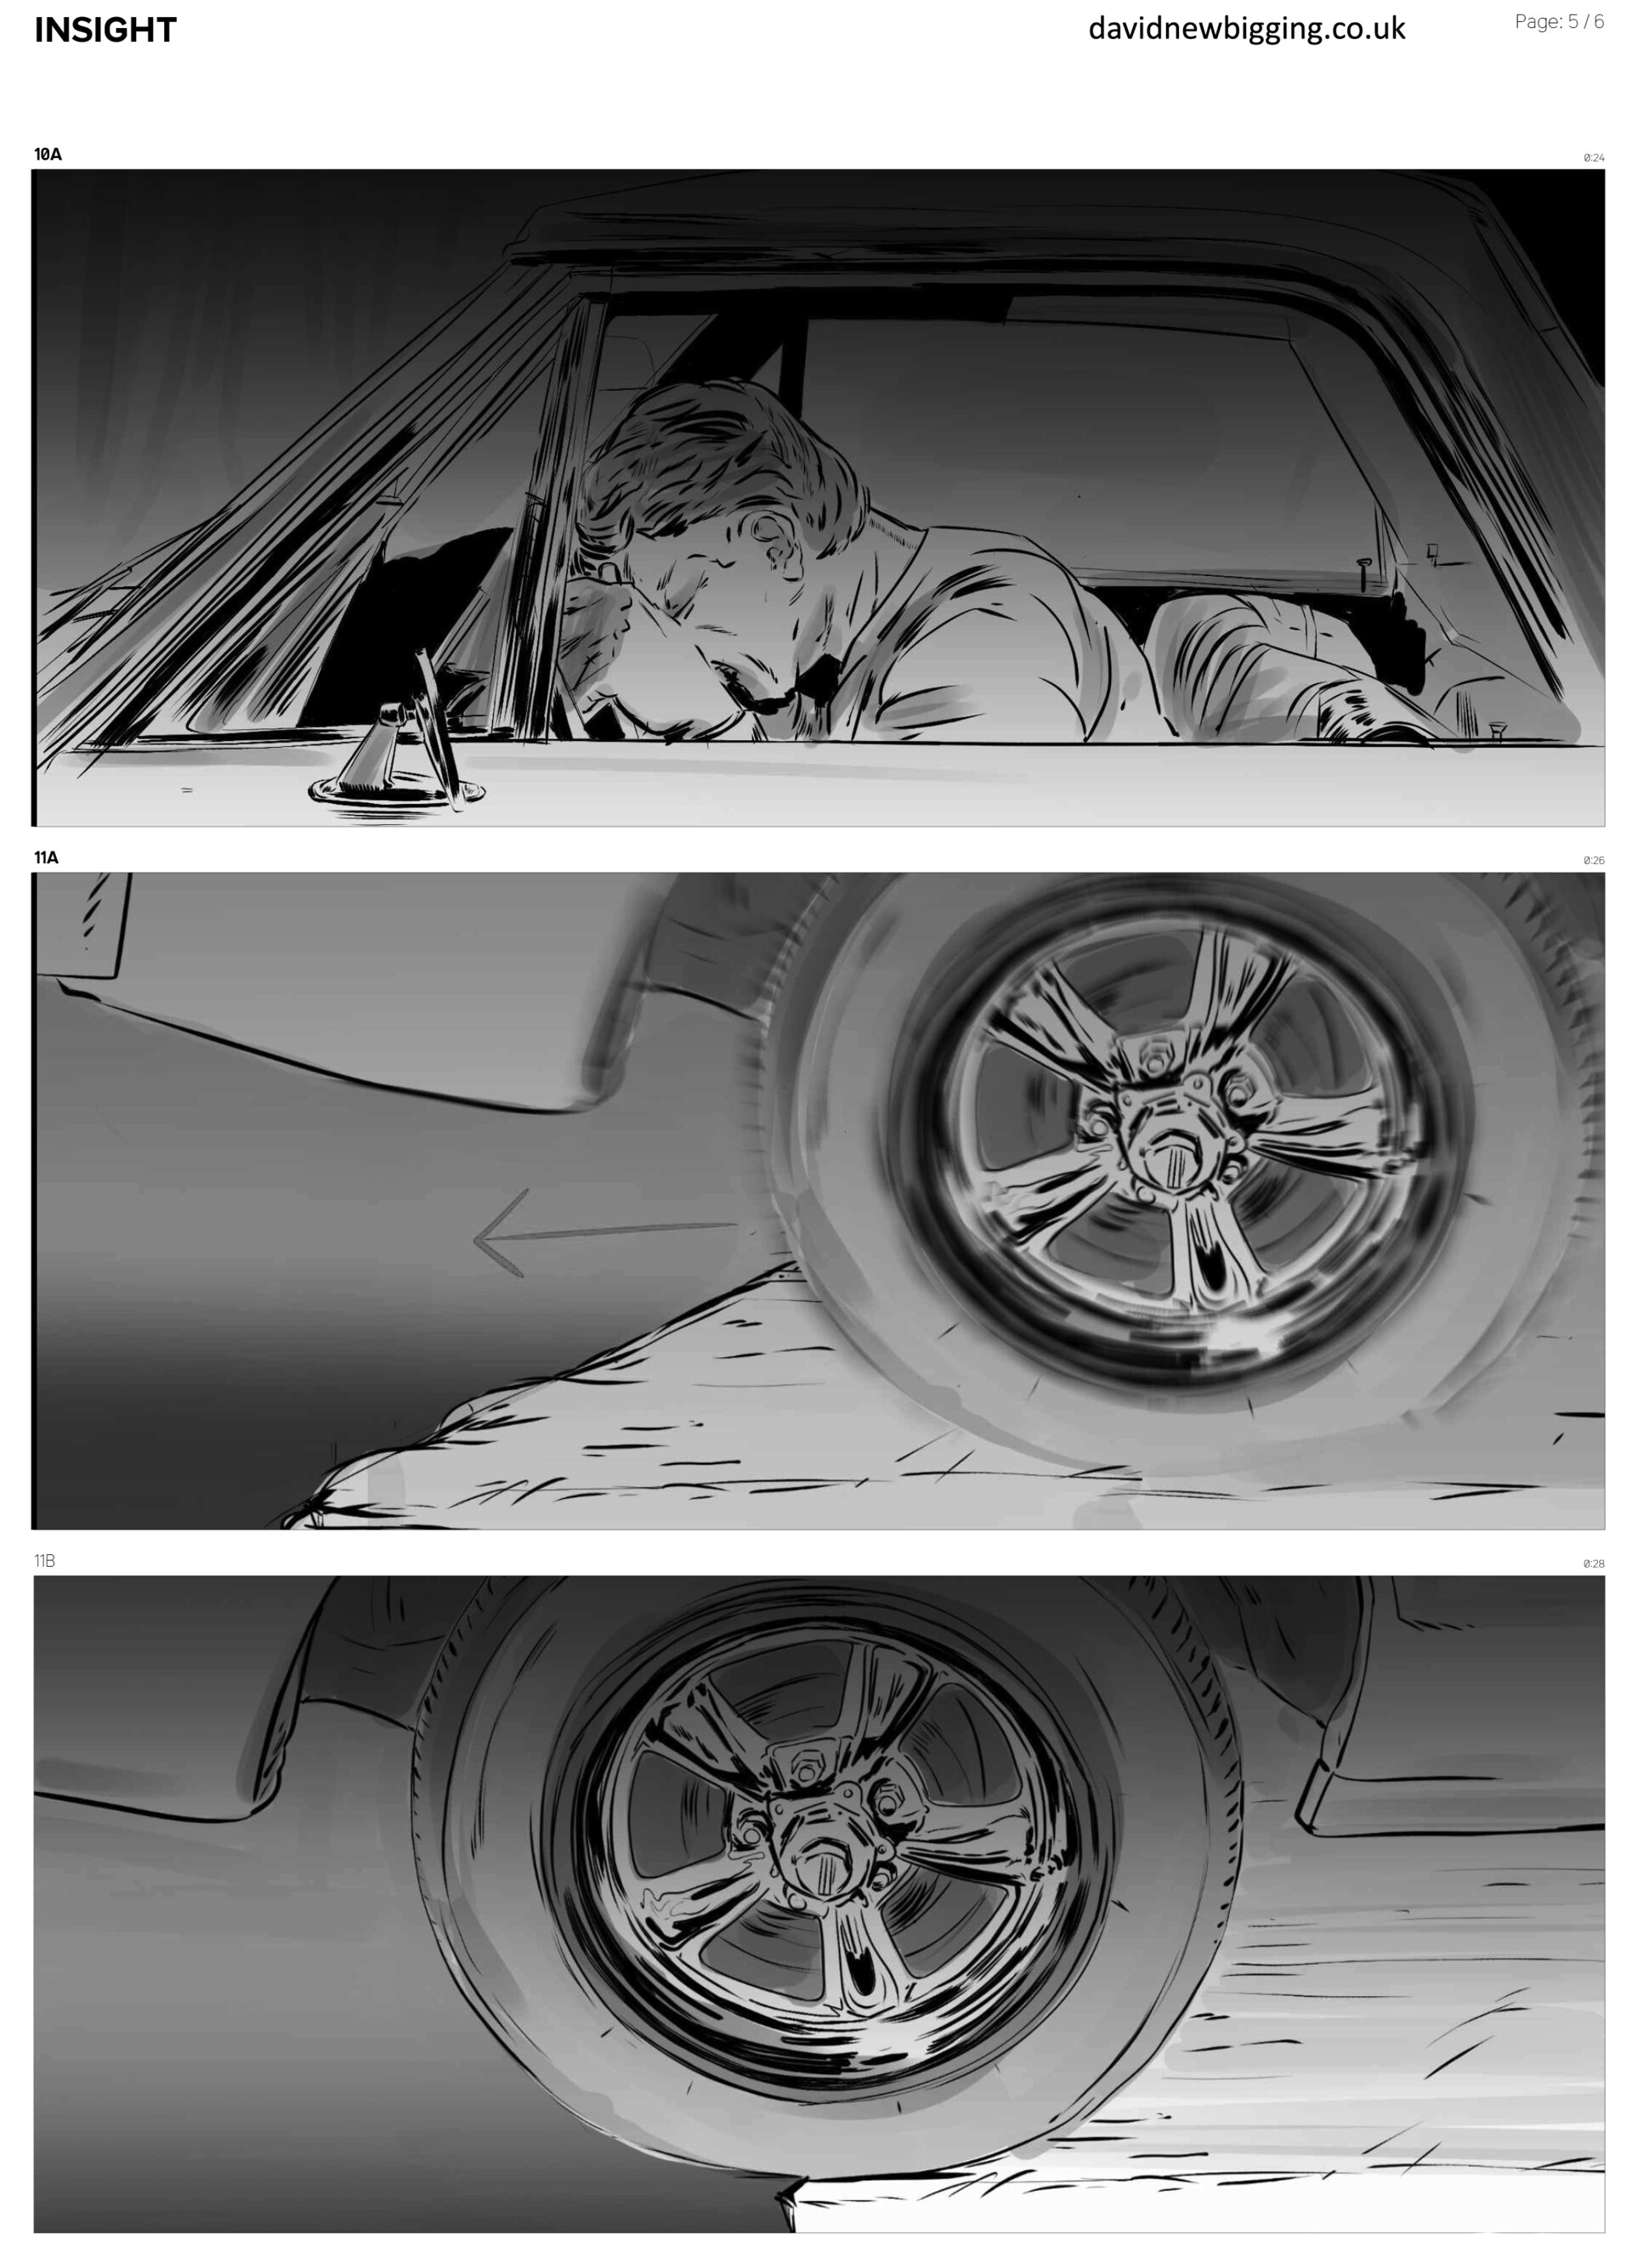 David newbigging insight teaser storyboards v2 5